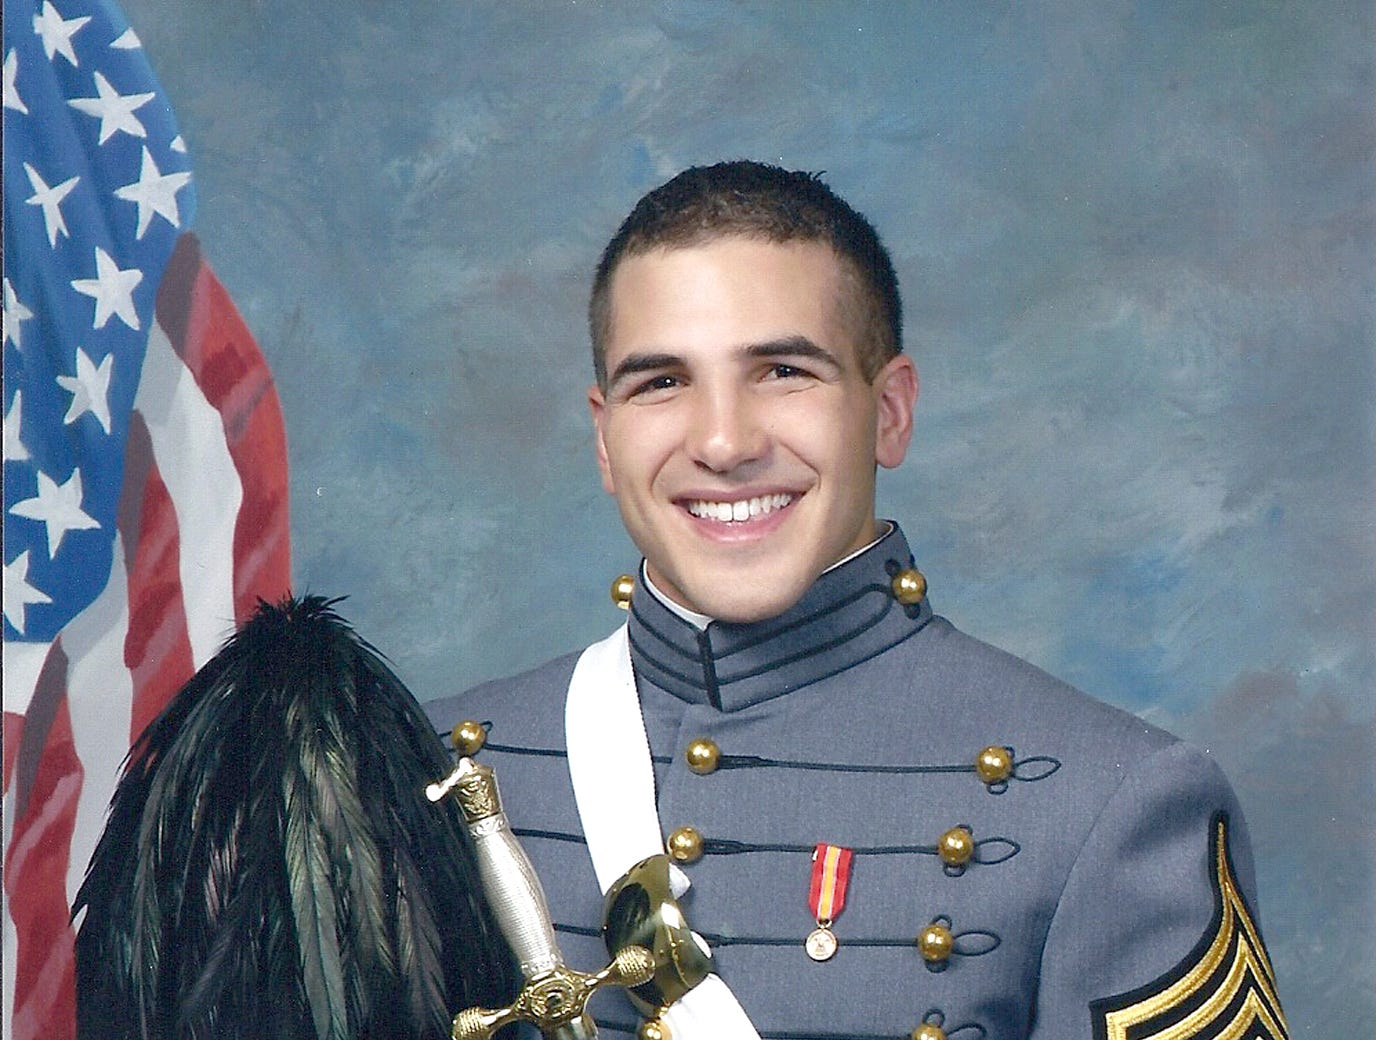 Army First Lt. Daren Hidalgo, 24,a Dallastown Area High School graduate, was killed Feb. 20, 2011 in Afghanistan while conducting combat operations.